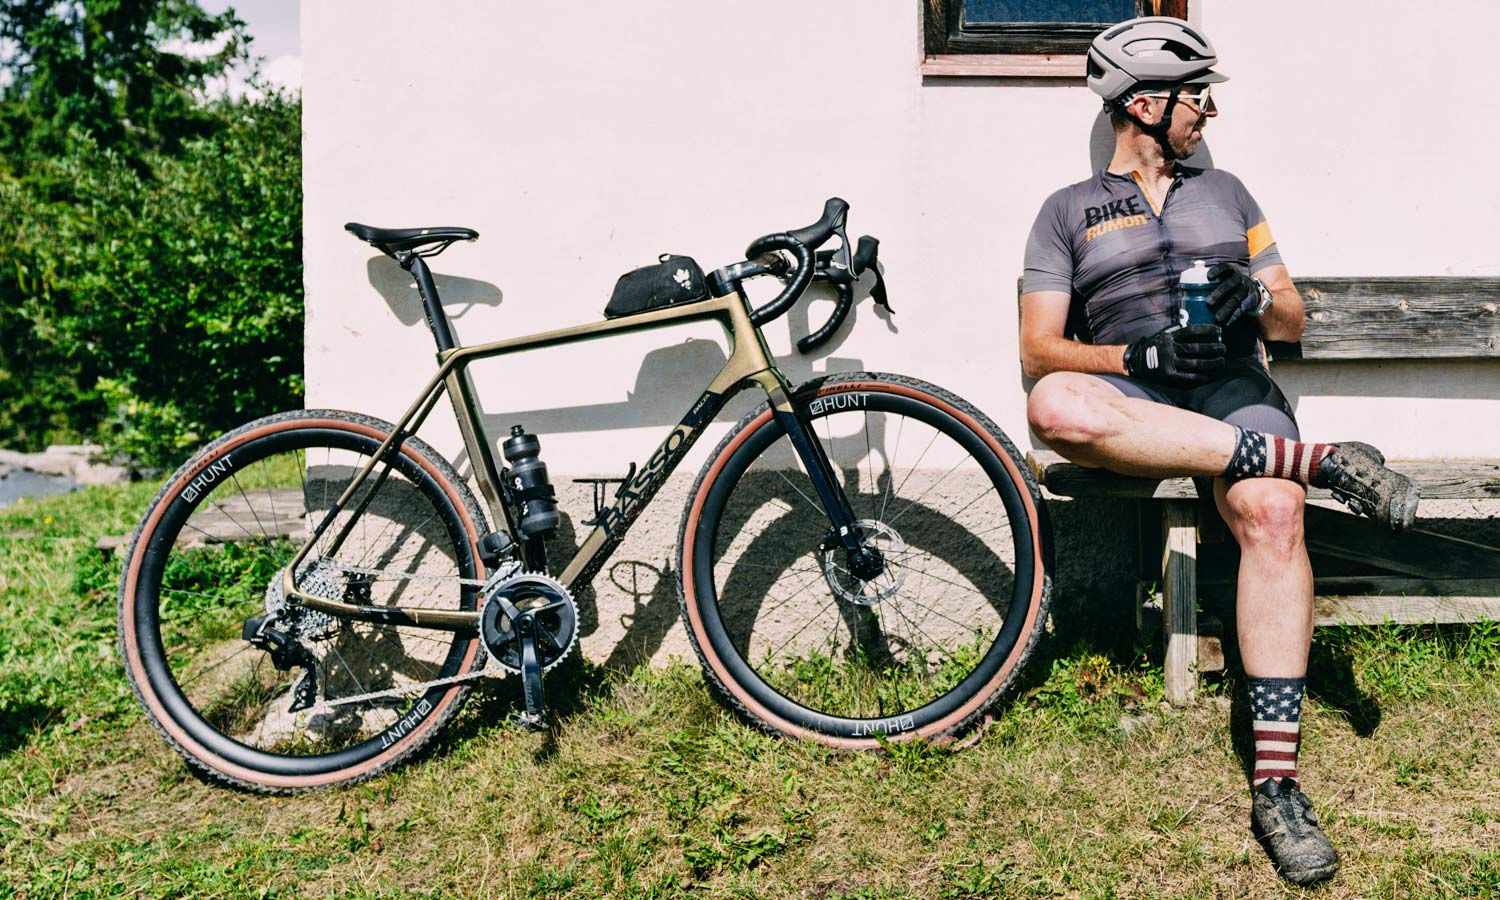 2022 Basso Palta II carbon gravel bike review made-in-Italy, photo by Francesco Bonato,pit-stop